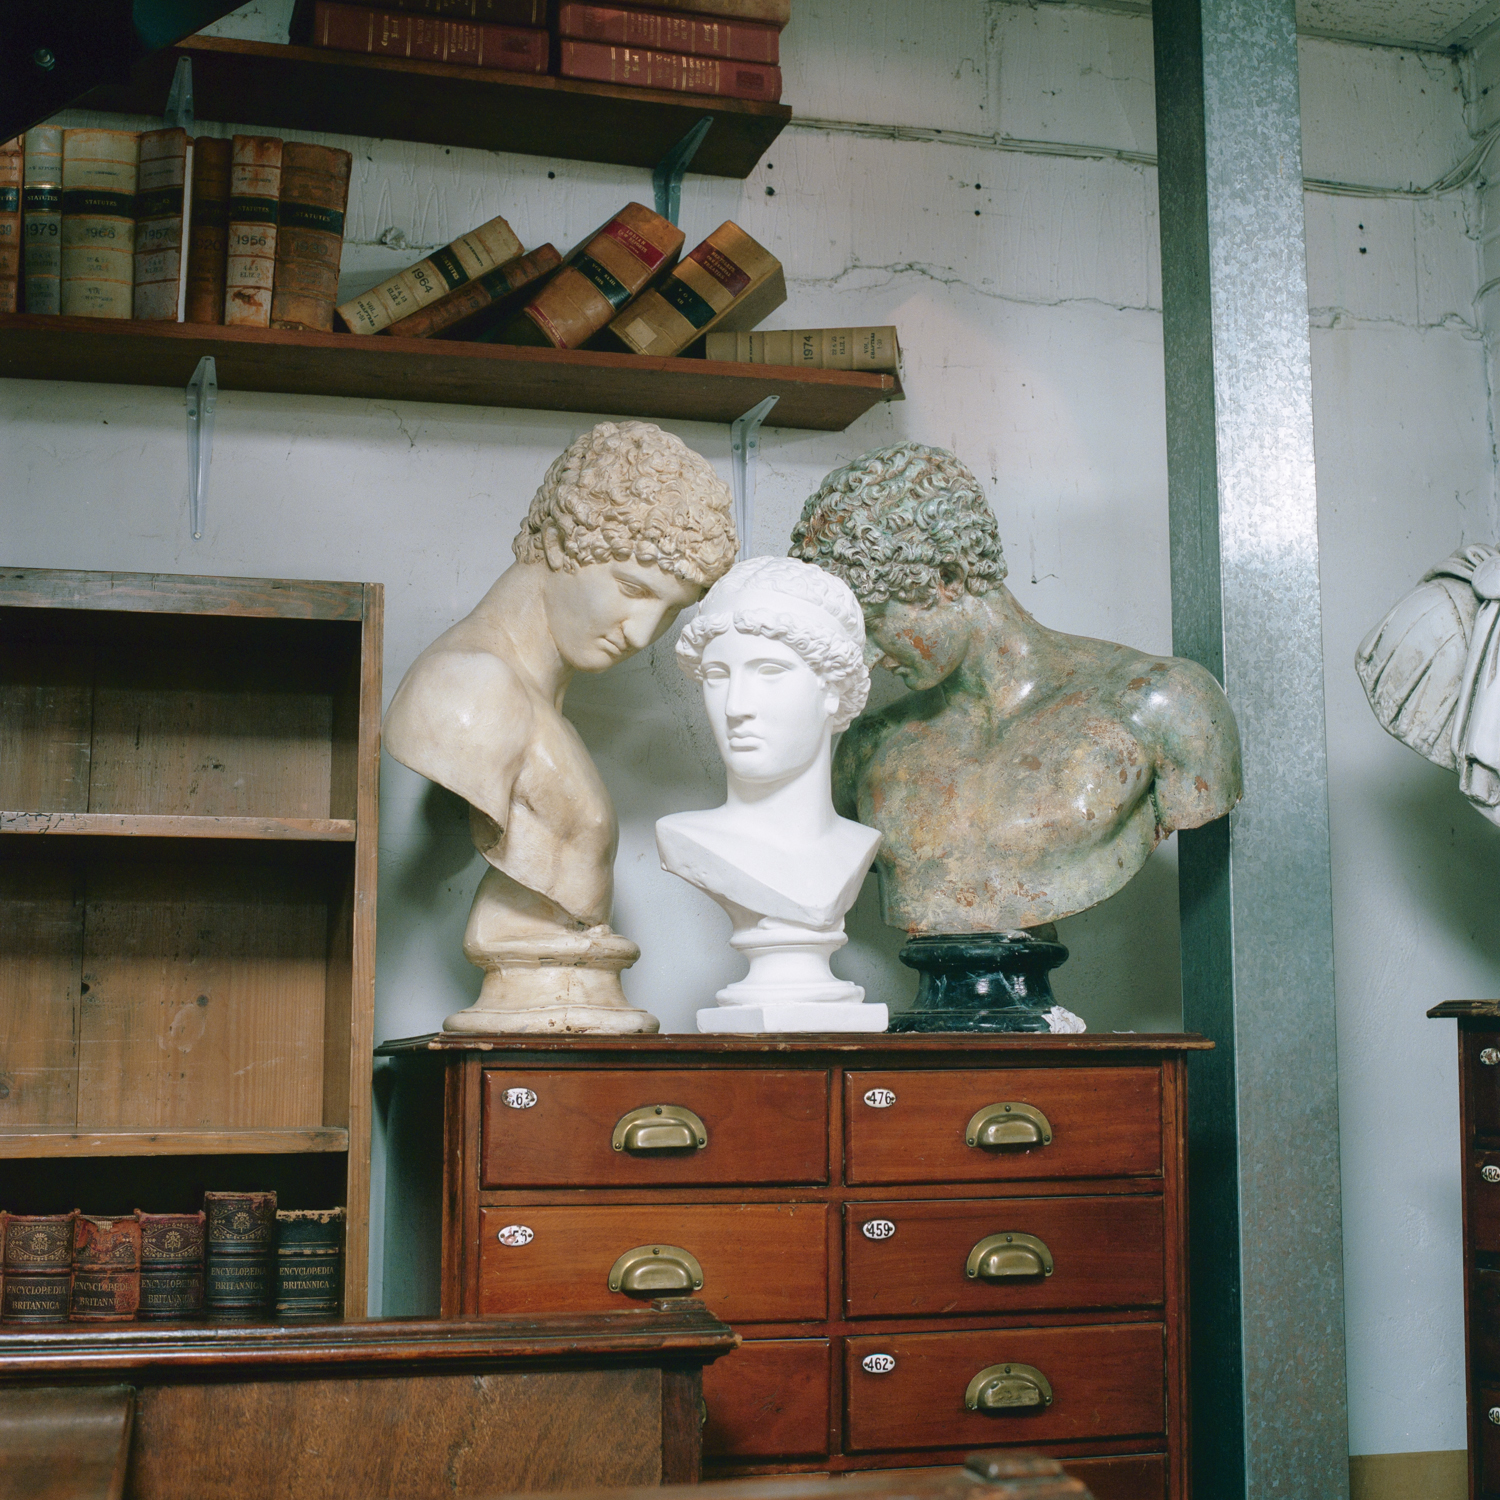 Antique books and busts